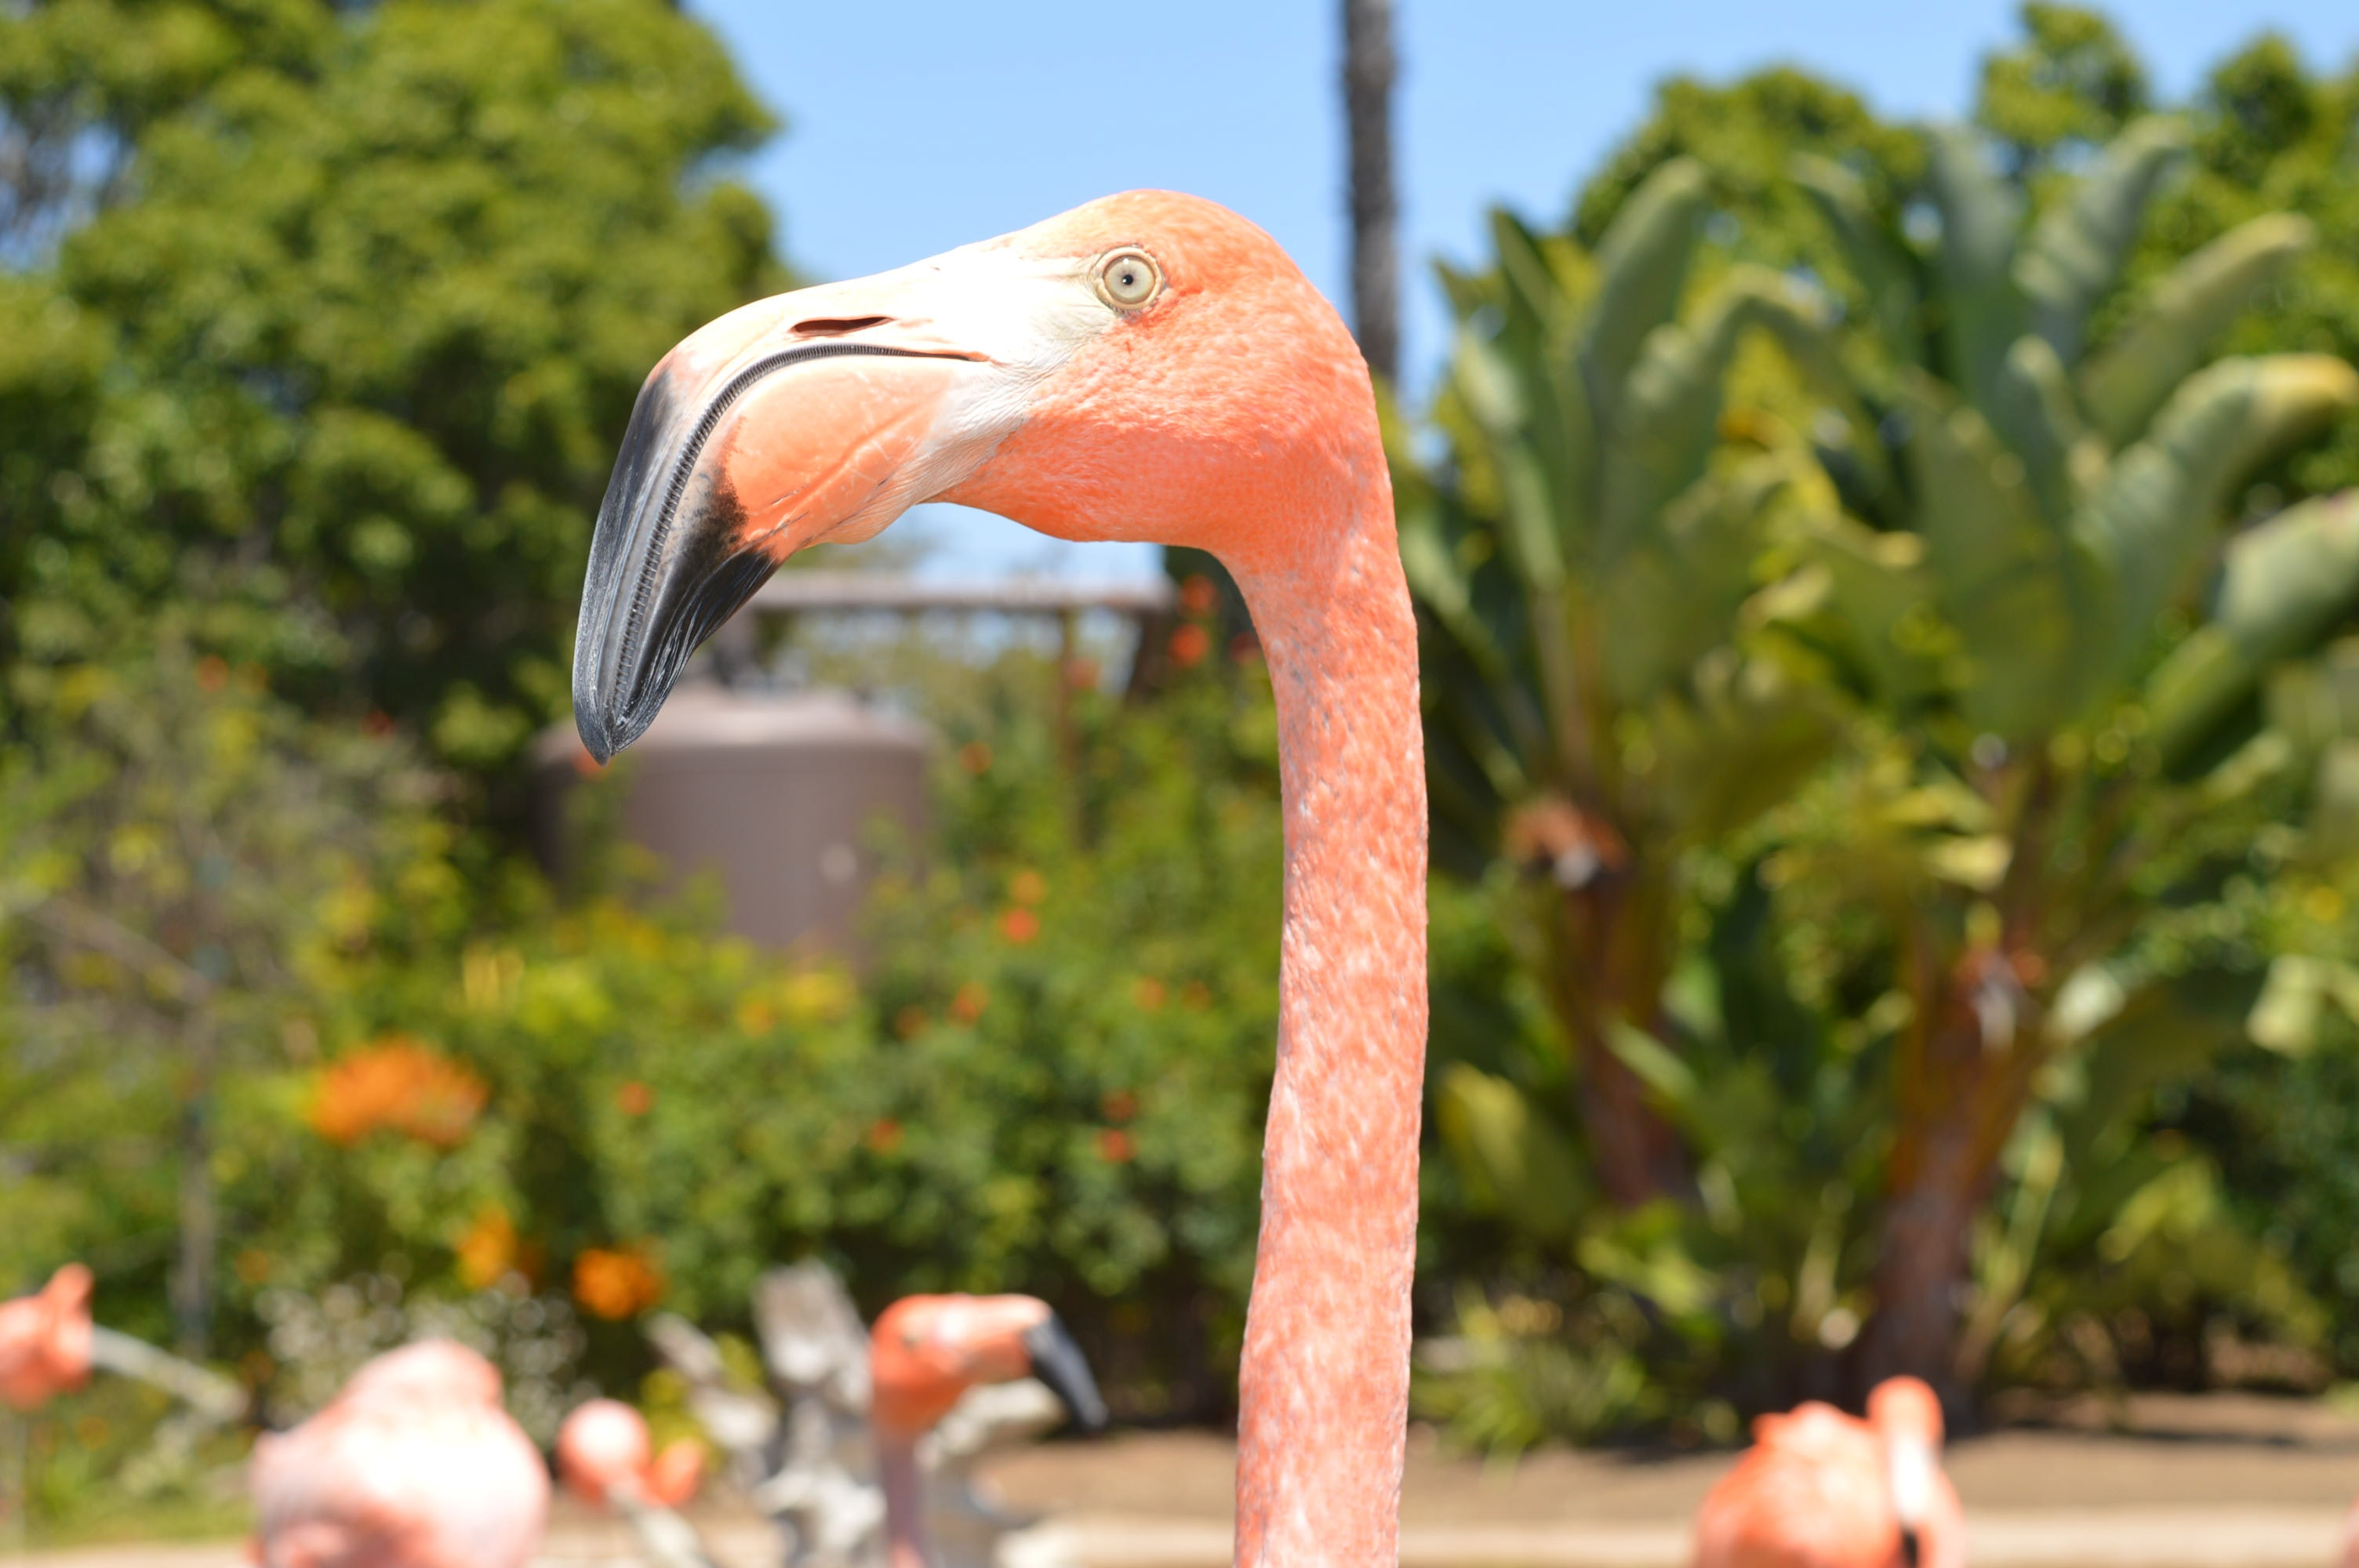 Pink flamingo stretches its neck standing among its flock at the zoo